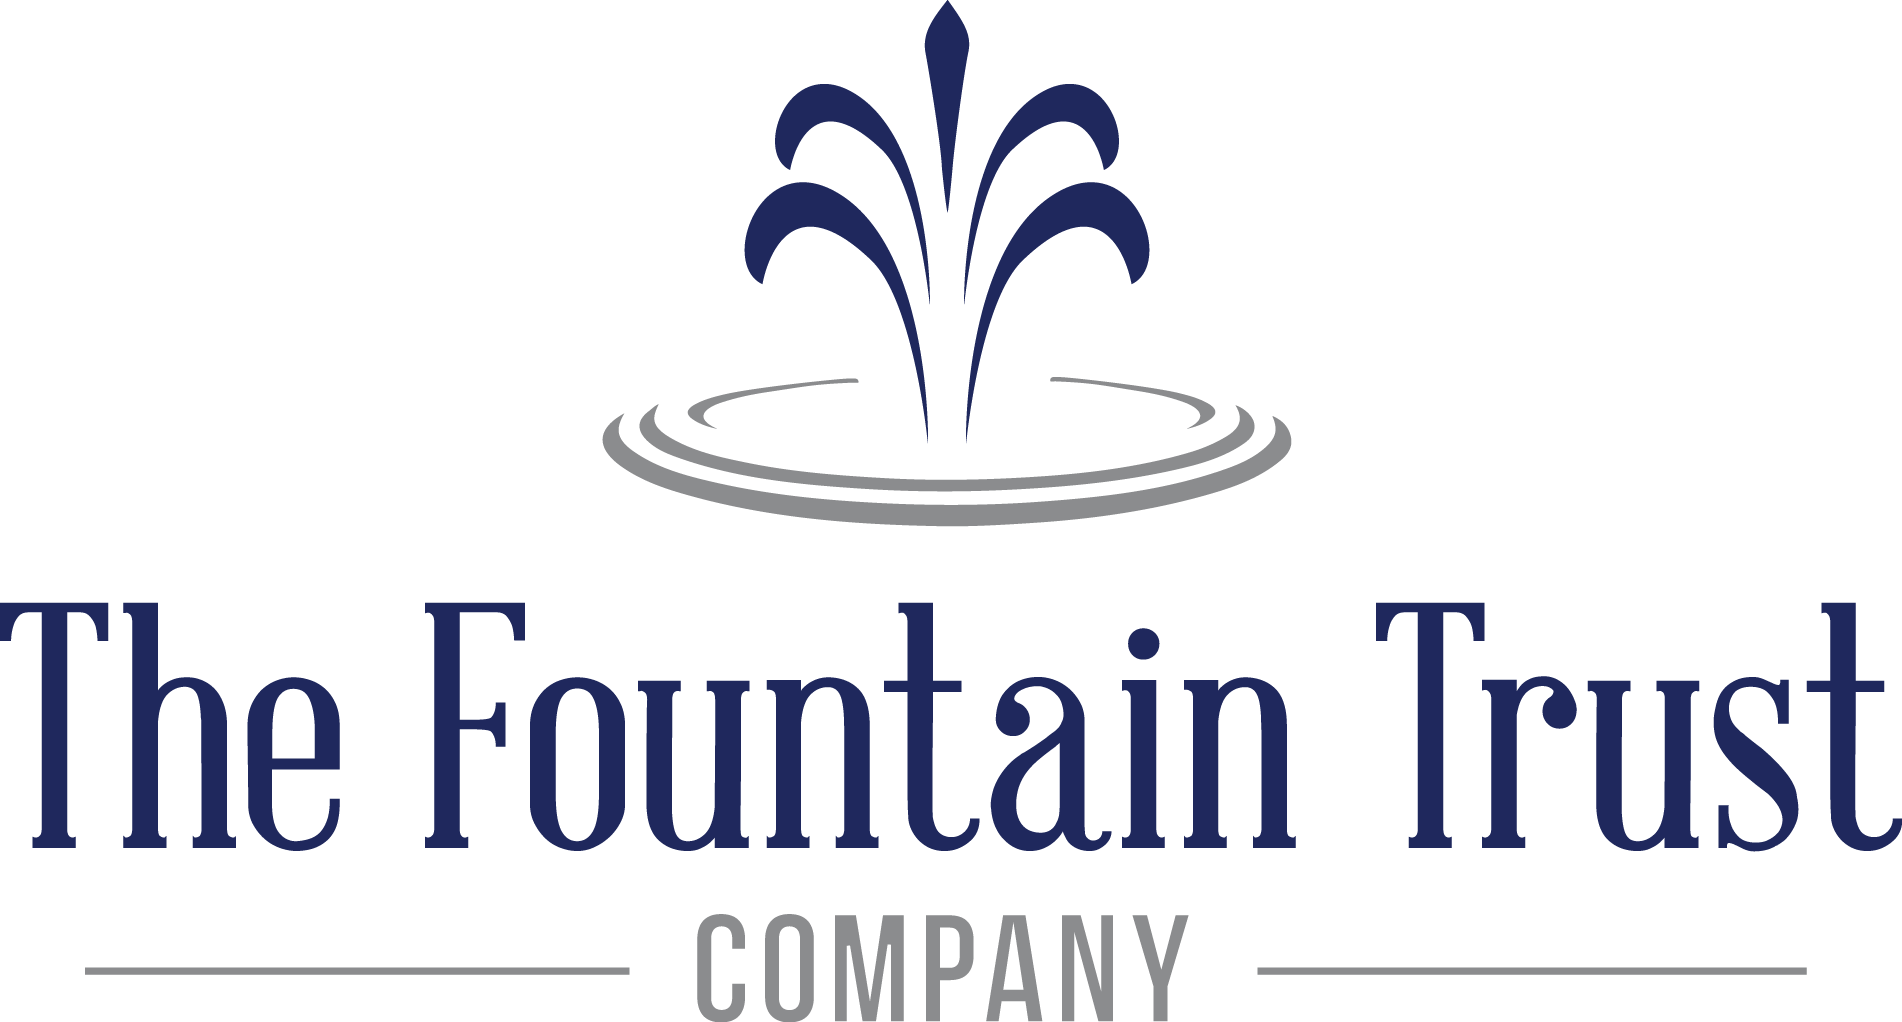 The Fountain Trust Company